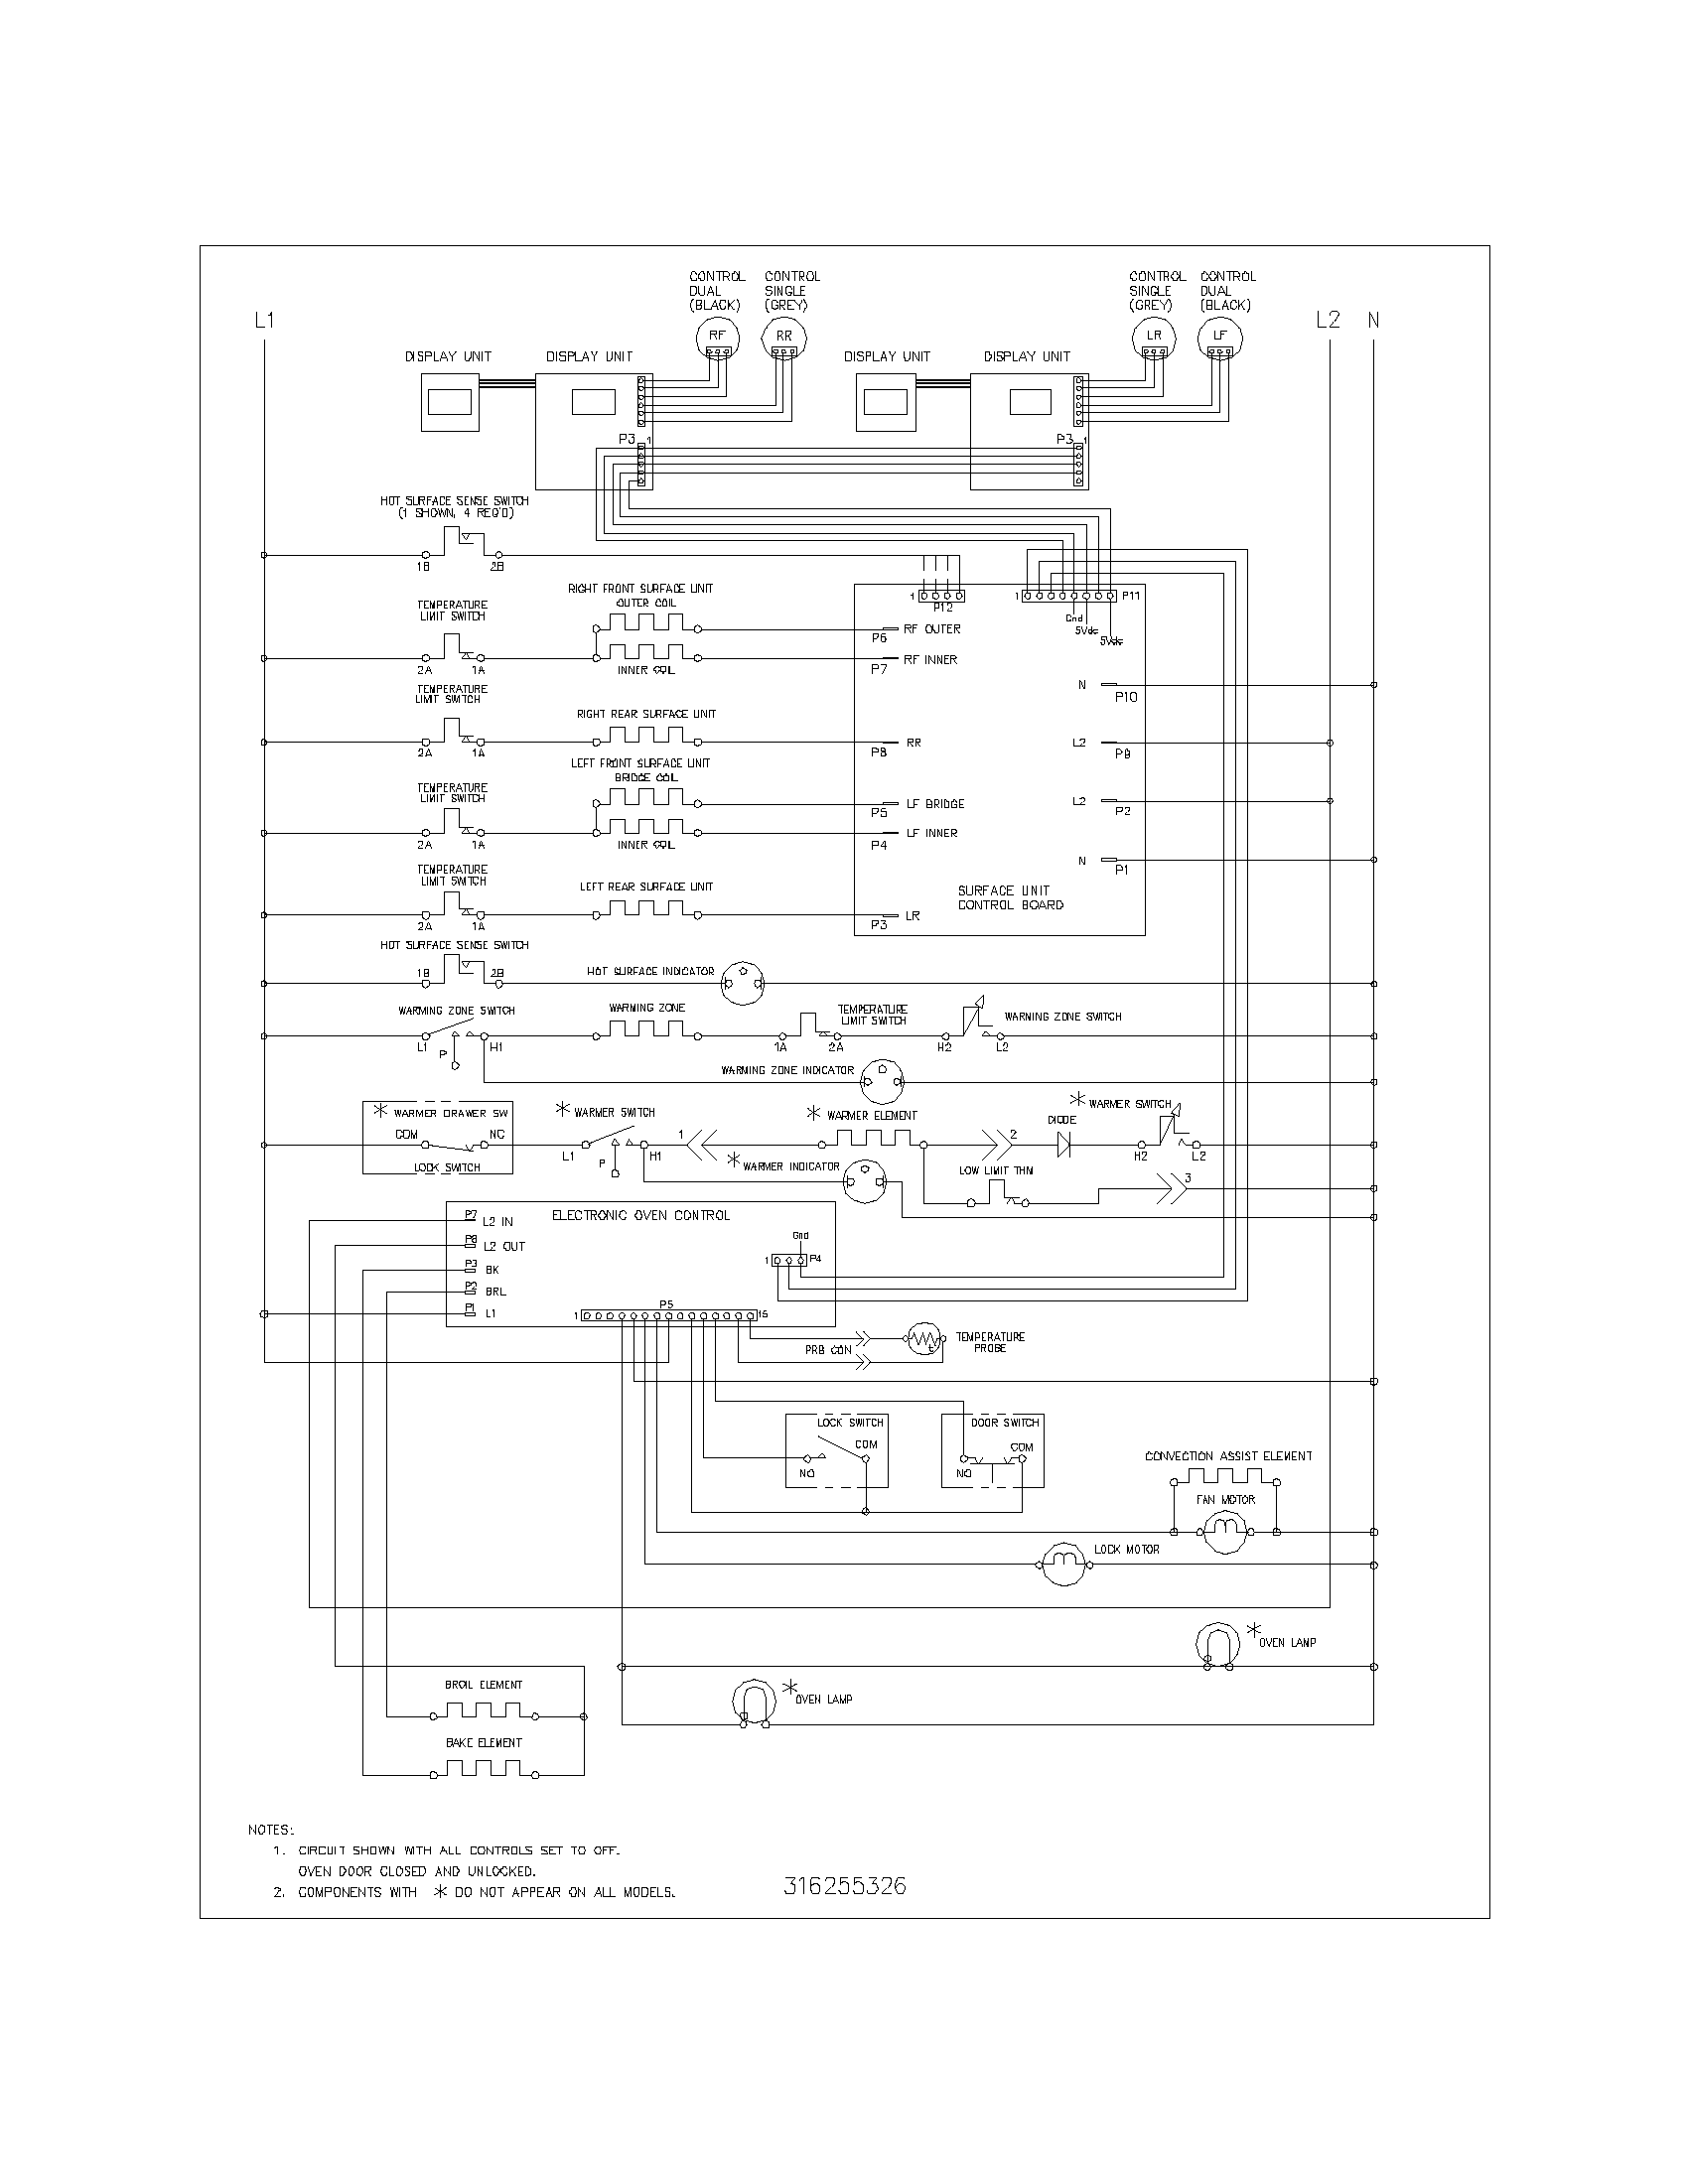 Imperial range wiring diagram wiring library u2022 ayurve co rh ayurve co